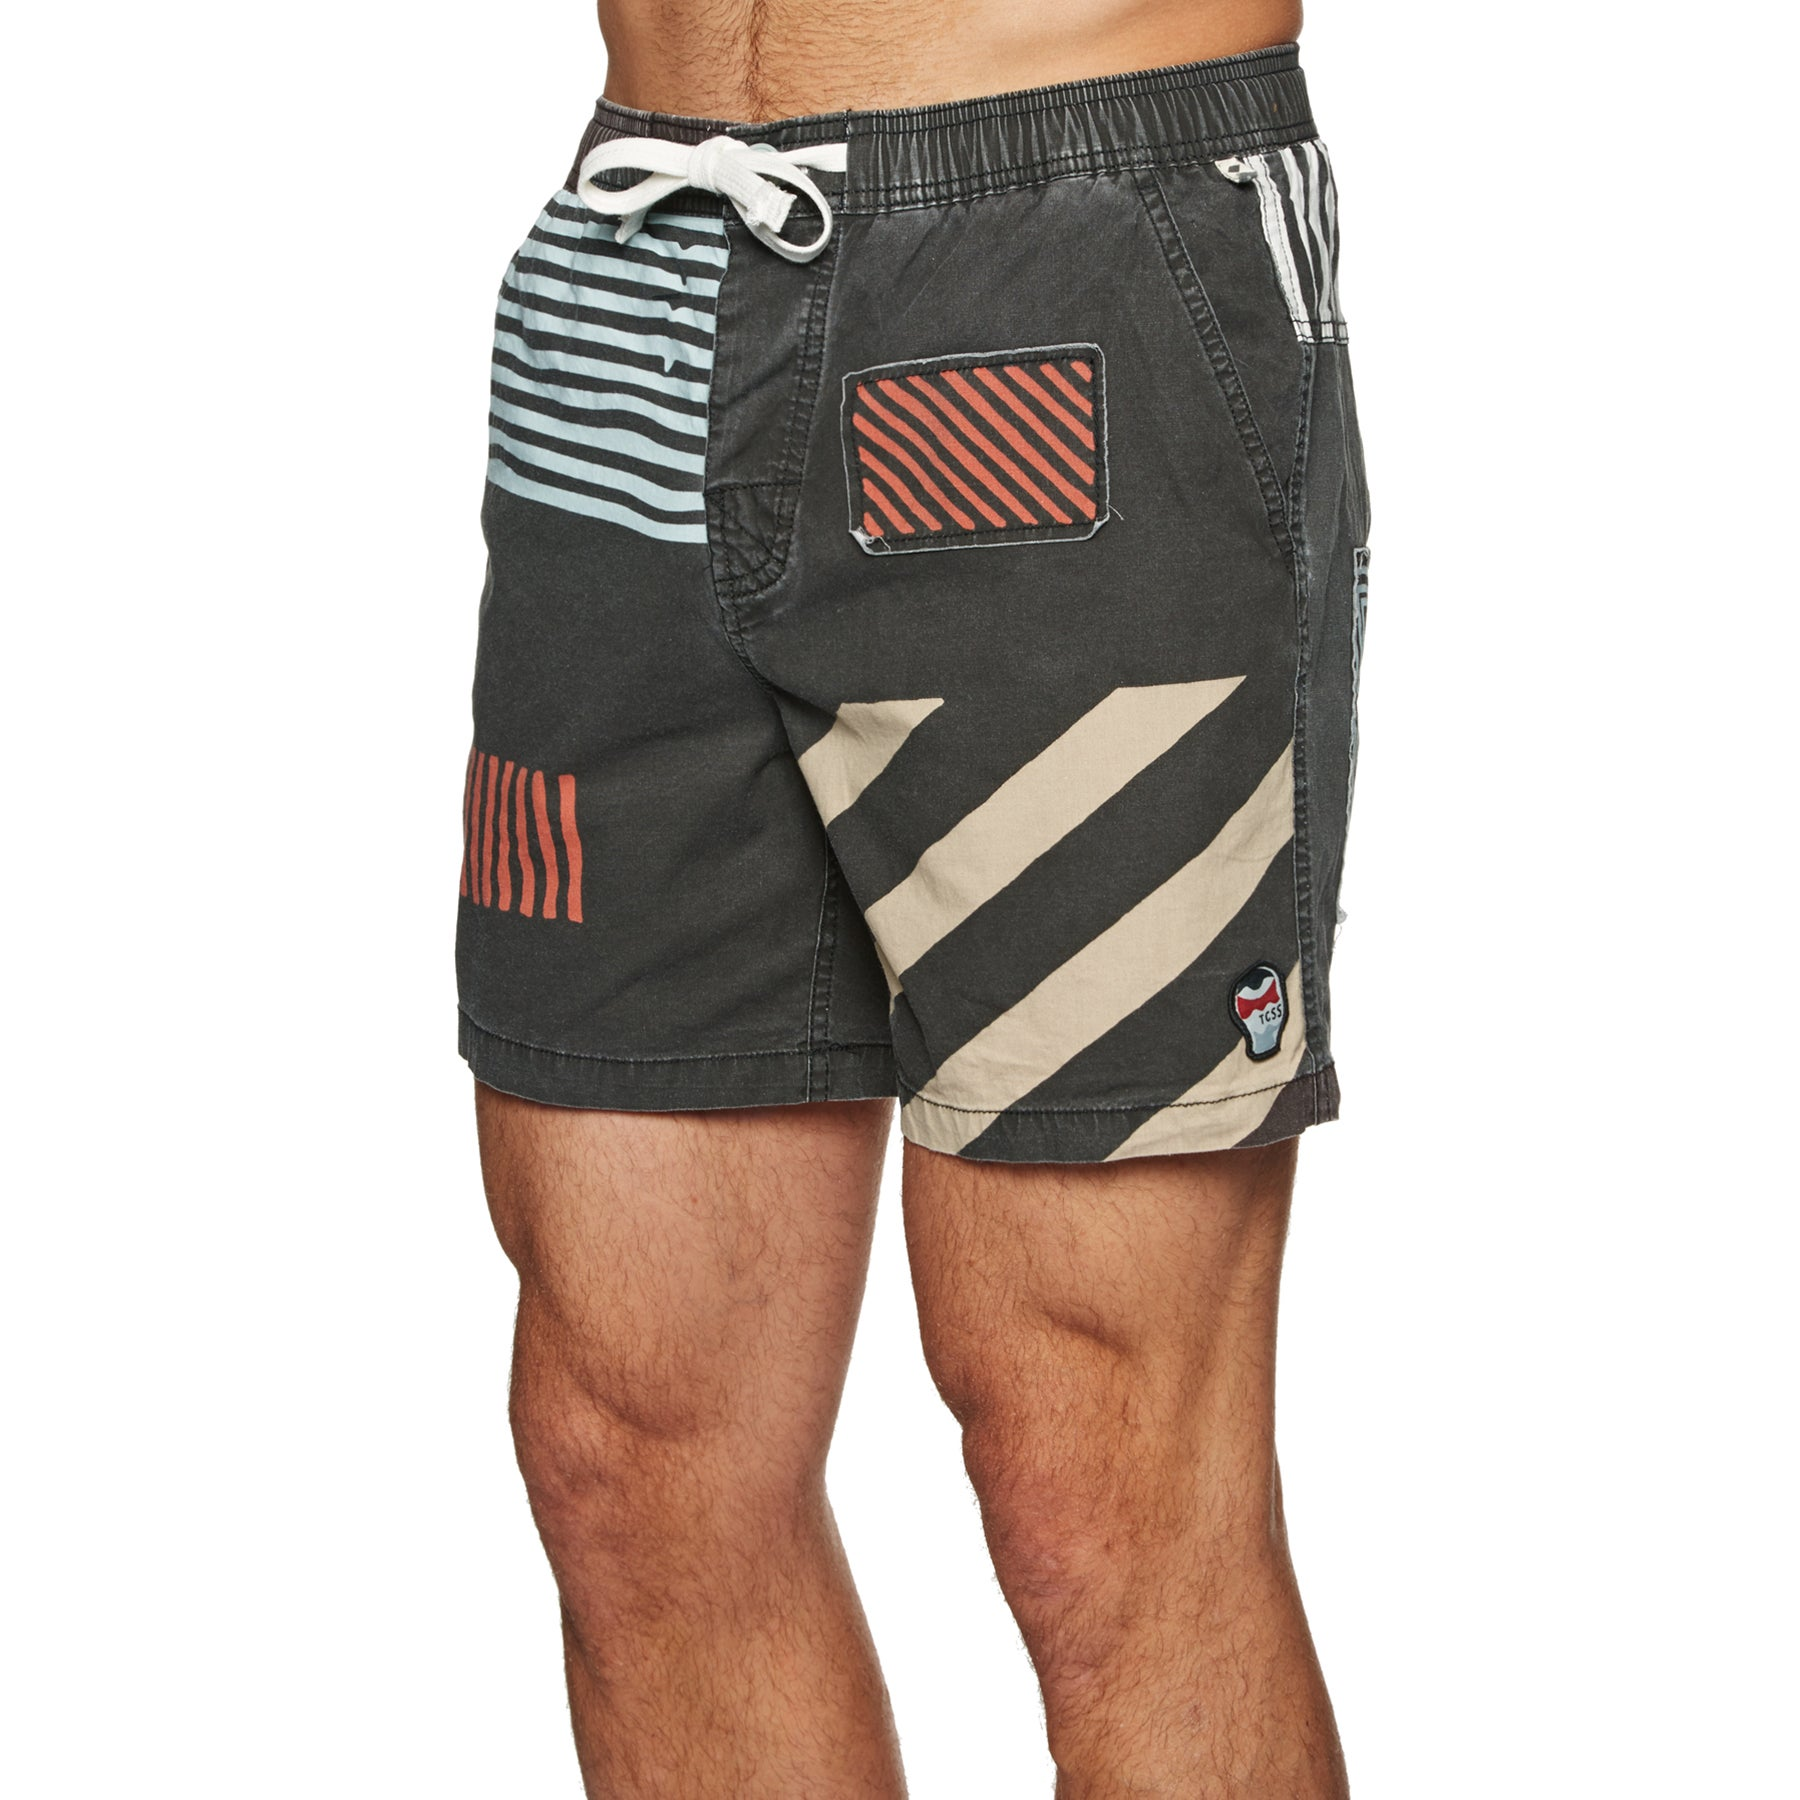 The Critical Slide Society Awol Boardshorts